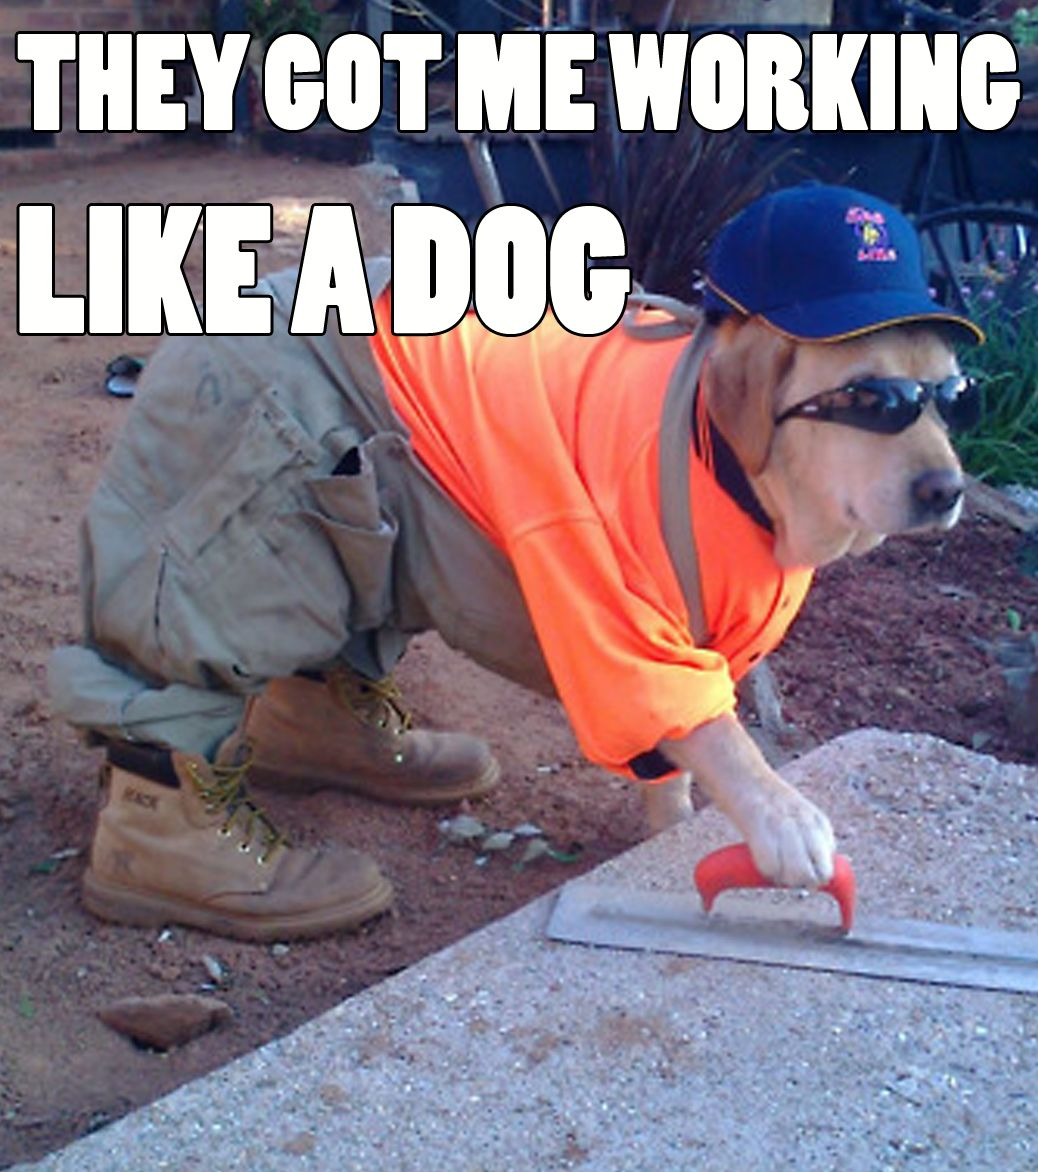 They got me working like a dog. To brighten your day with